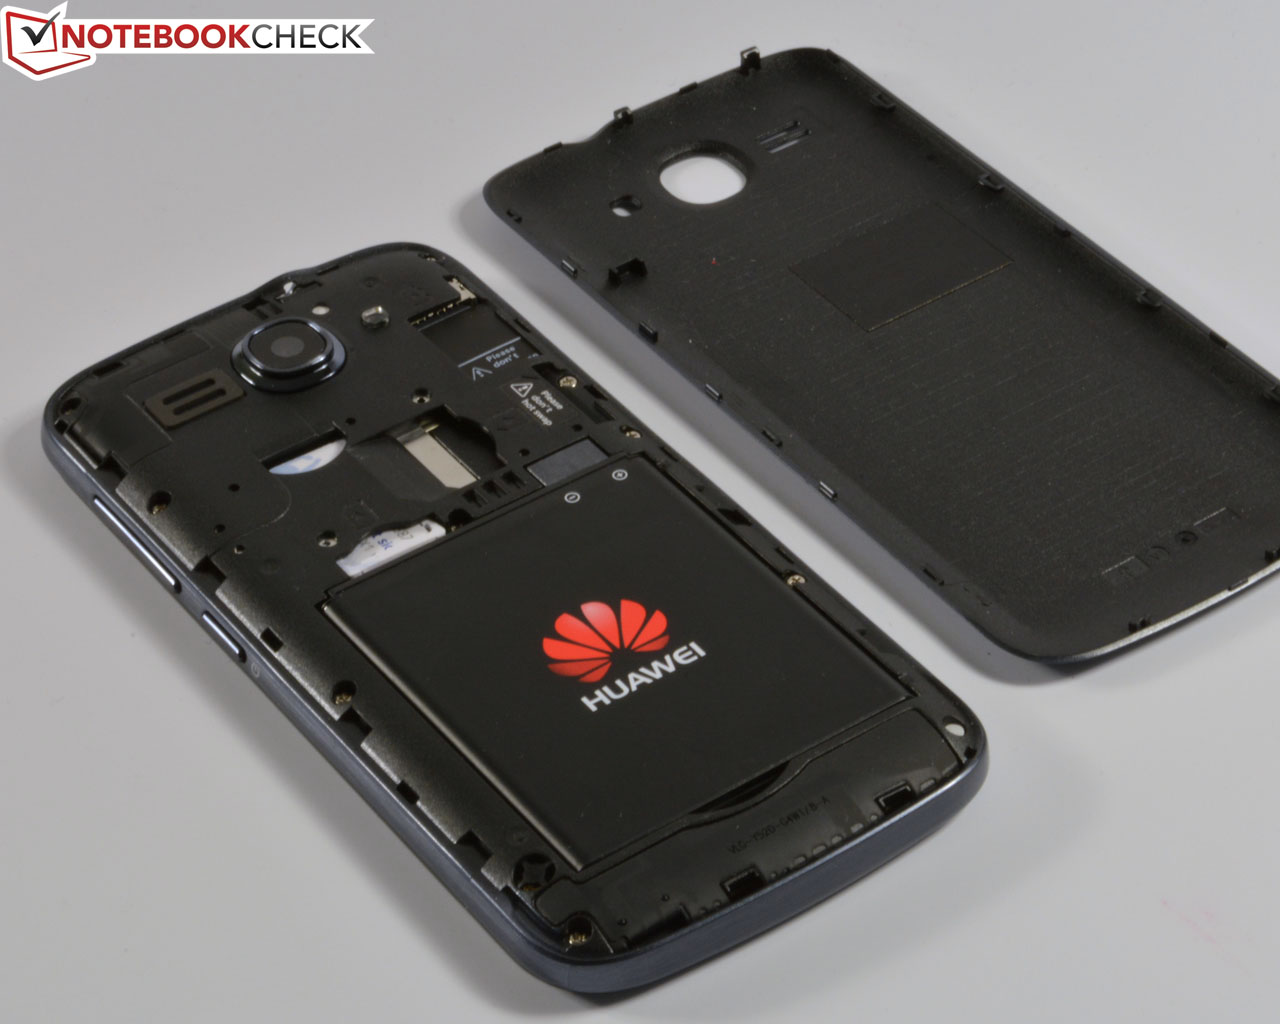 Huawei Y540 Smartphone Review Reviews Ascend Y520 4gb Warping Attempts Barely Had An Effect But They Produced A Cracking Noise In The Area Of Battery Cover Gaps Are Throughout Smooth And Even